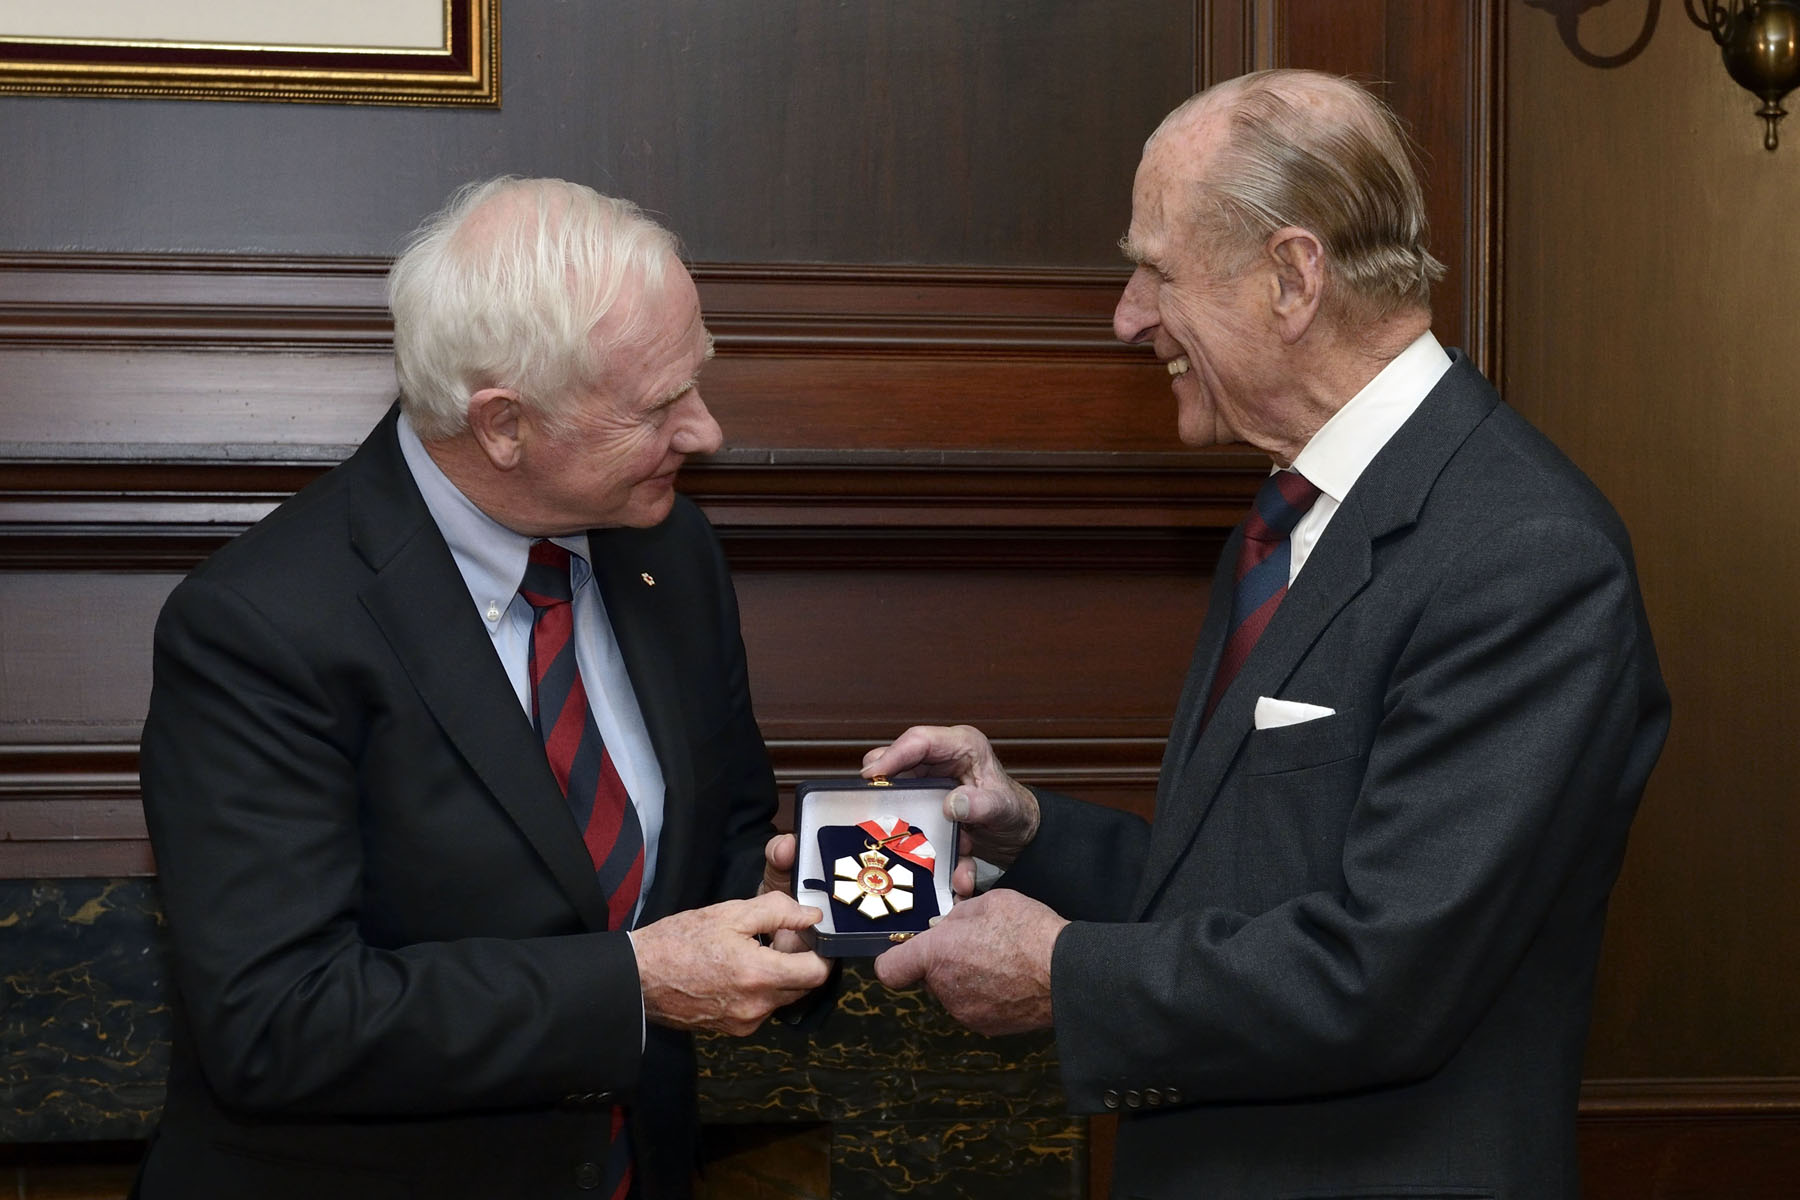 "His Royal Highness was first presented with the insignia of Companion of the Order of Canada. His citation is as follows: ""His Royal Highness The Prince Philip, Duke of Edinburgh, has long embodied dignity, loyalty and service to others. He has known eleven Canadian governors general and eleven prime ministers, and has been present at events which have shaped our nation, including the signing of the Canadian Charter of Rights and Freedoms.  His Royal Highness has a keen interest in the personal development of young people and, through the Duke of Edinburgh's Award, has helped to advance the community engagement and personal achievement of young Canadians. In addition, he has long held close ties with Canada's Armed Forces, which have recognized his service with the unique ranks of honorary admiral and general. Through his many visits to Canada, both on his own and with Her Majesty The Queen, he has shown his lasting concern for our country and for Canadians."""